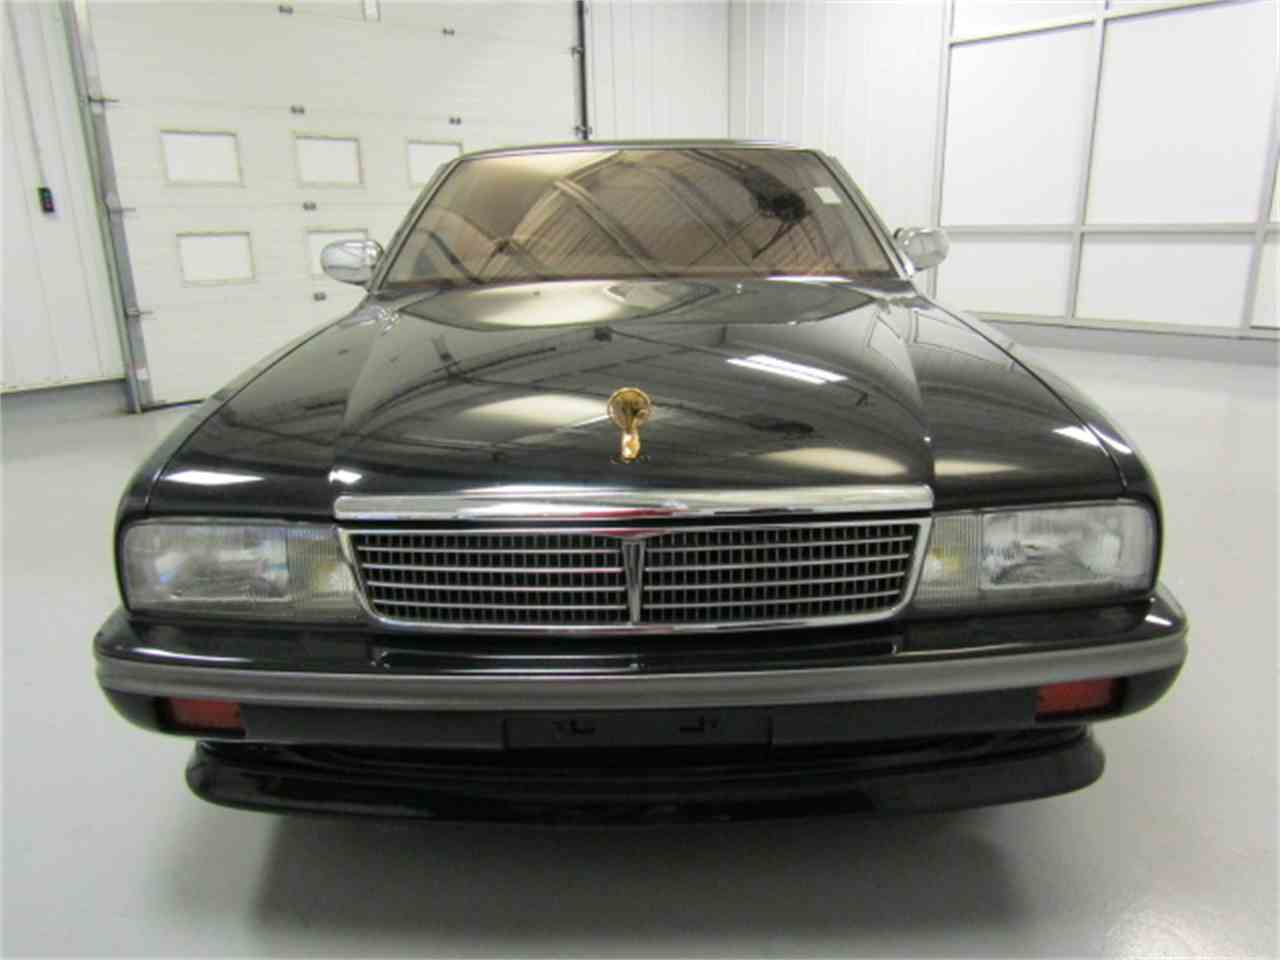 Large Picture of 1990 Nissan Cima located in Virginia - $5,990.00 - JLDM